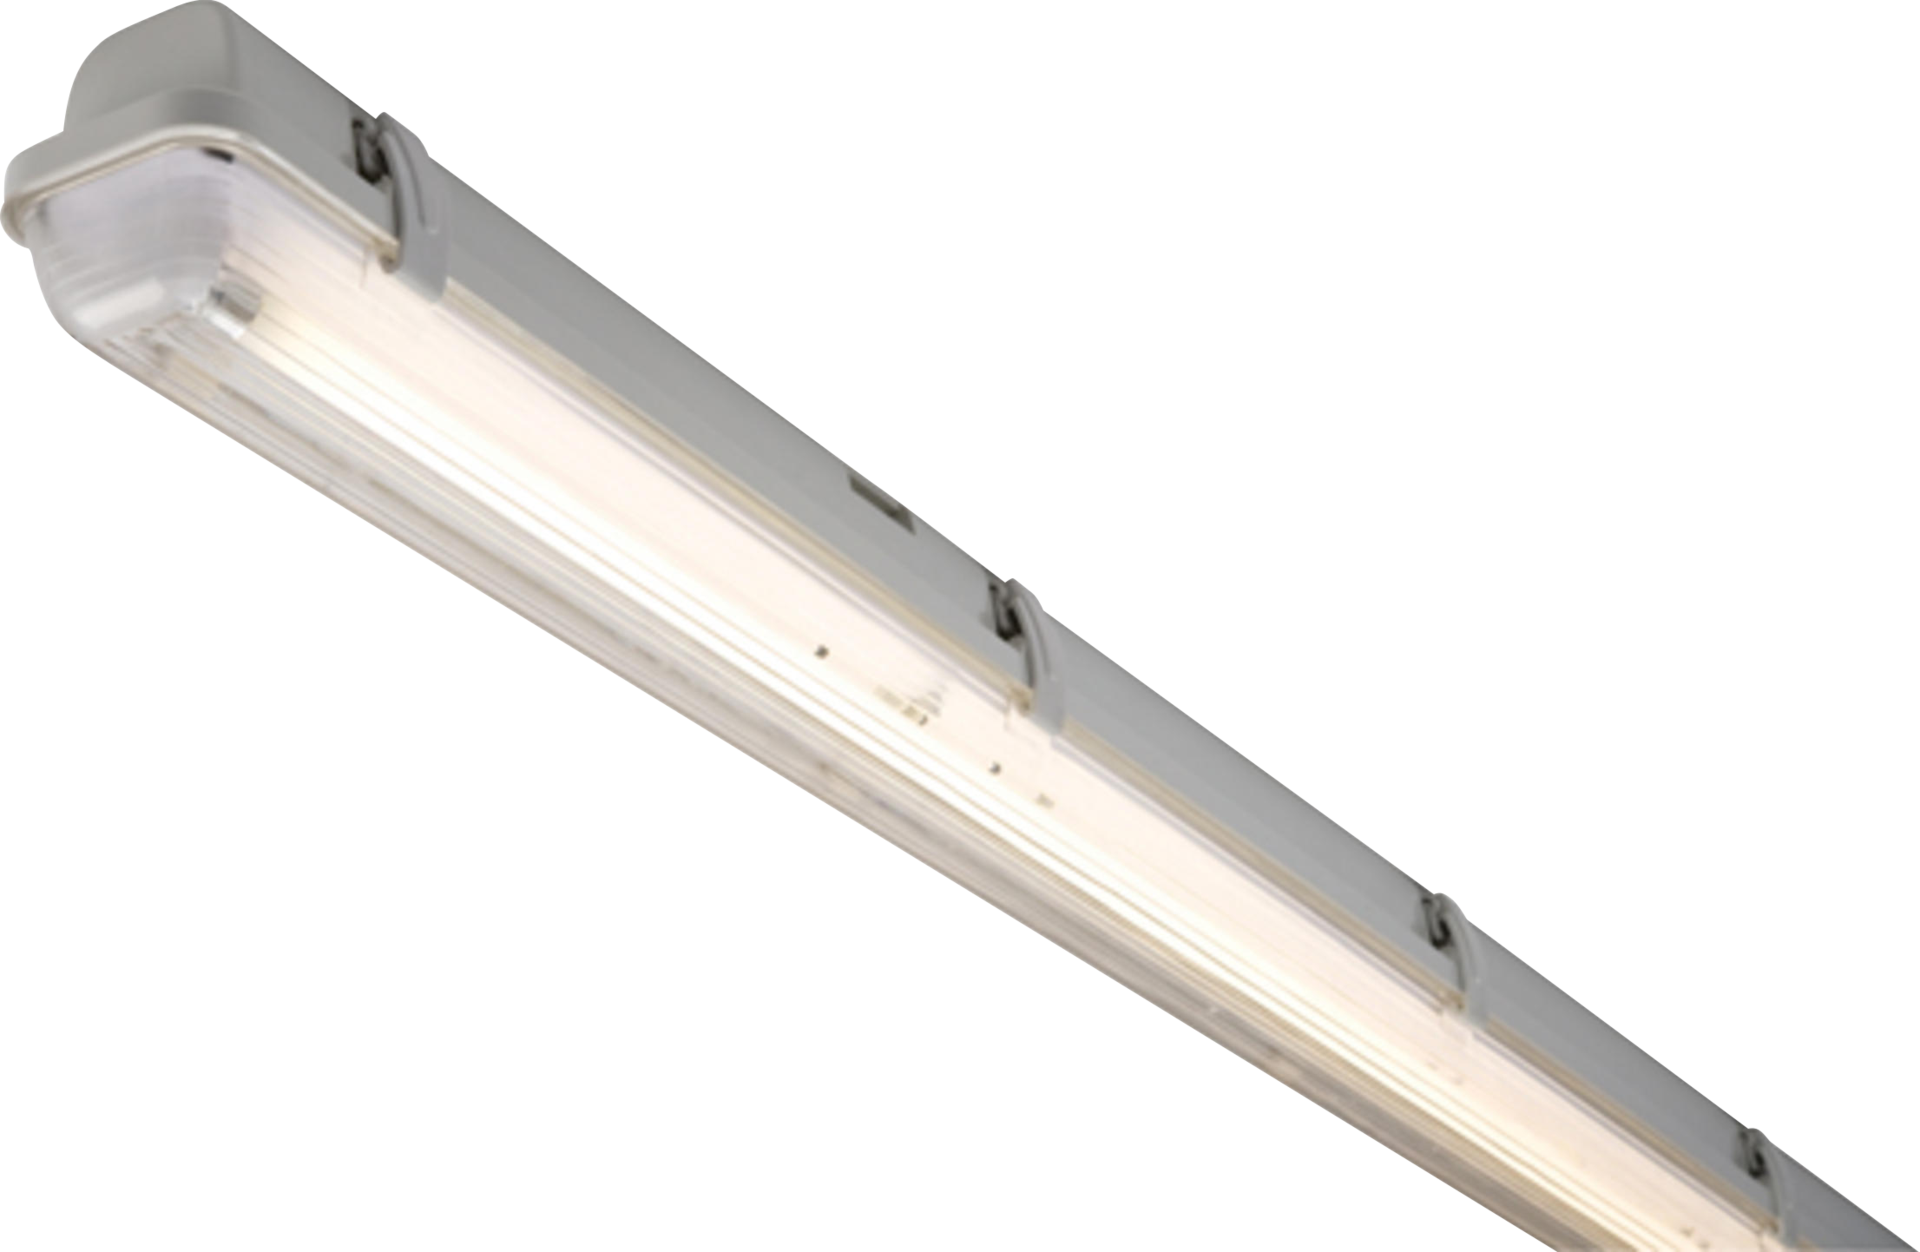 230V IP65 1X35W T5 HF Single Non-Corrosive Fluorescent Fitting 5ft